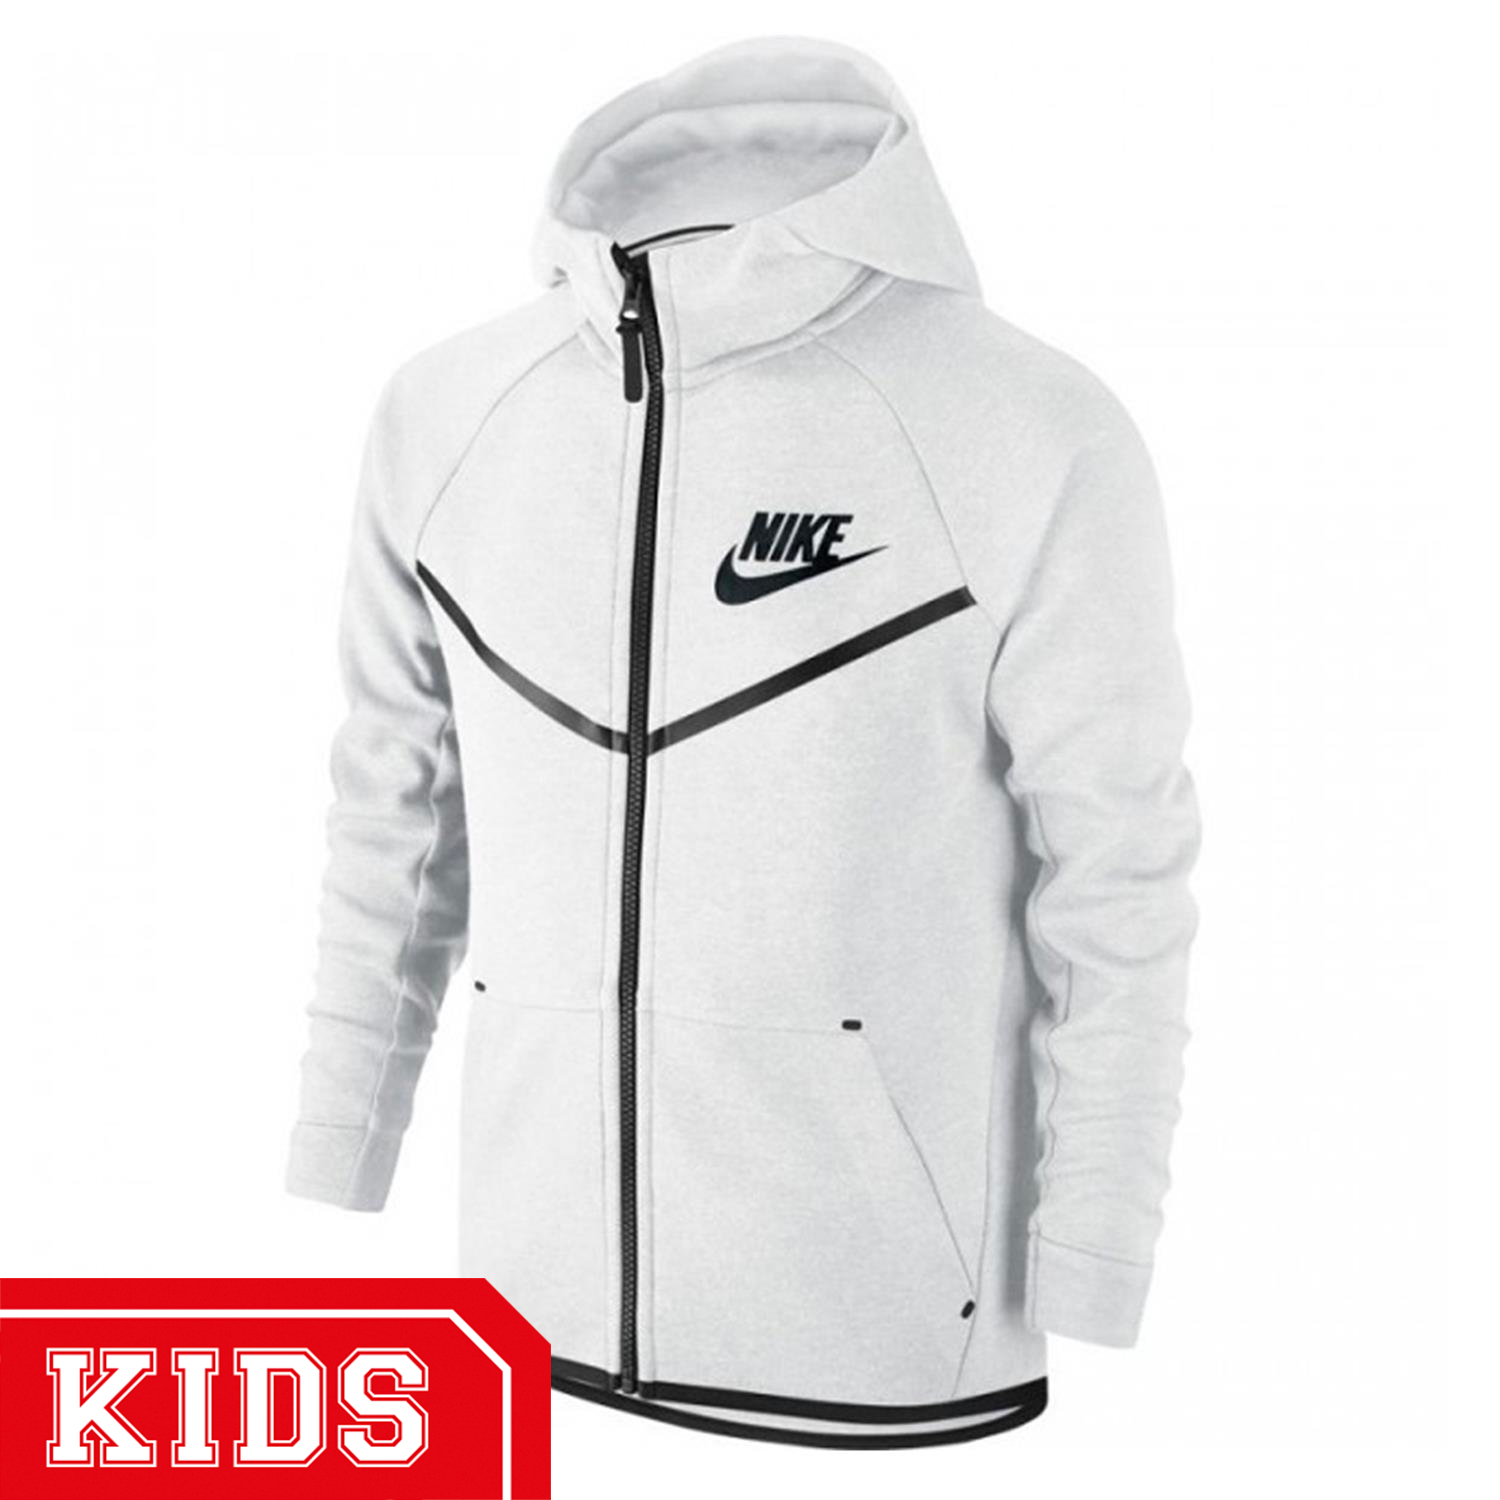 07f99faf688 Nike 804730 TECH FLEECE HOODY JUNIOR